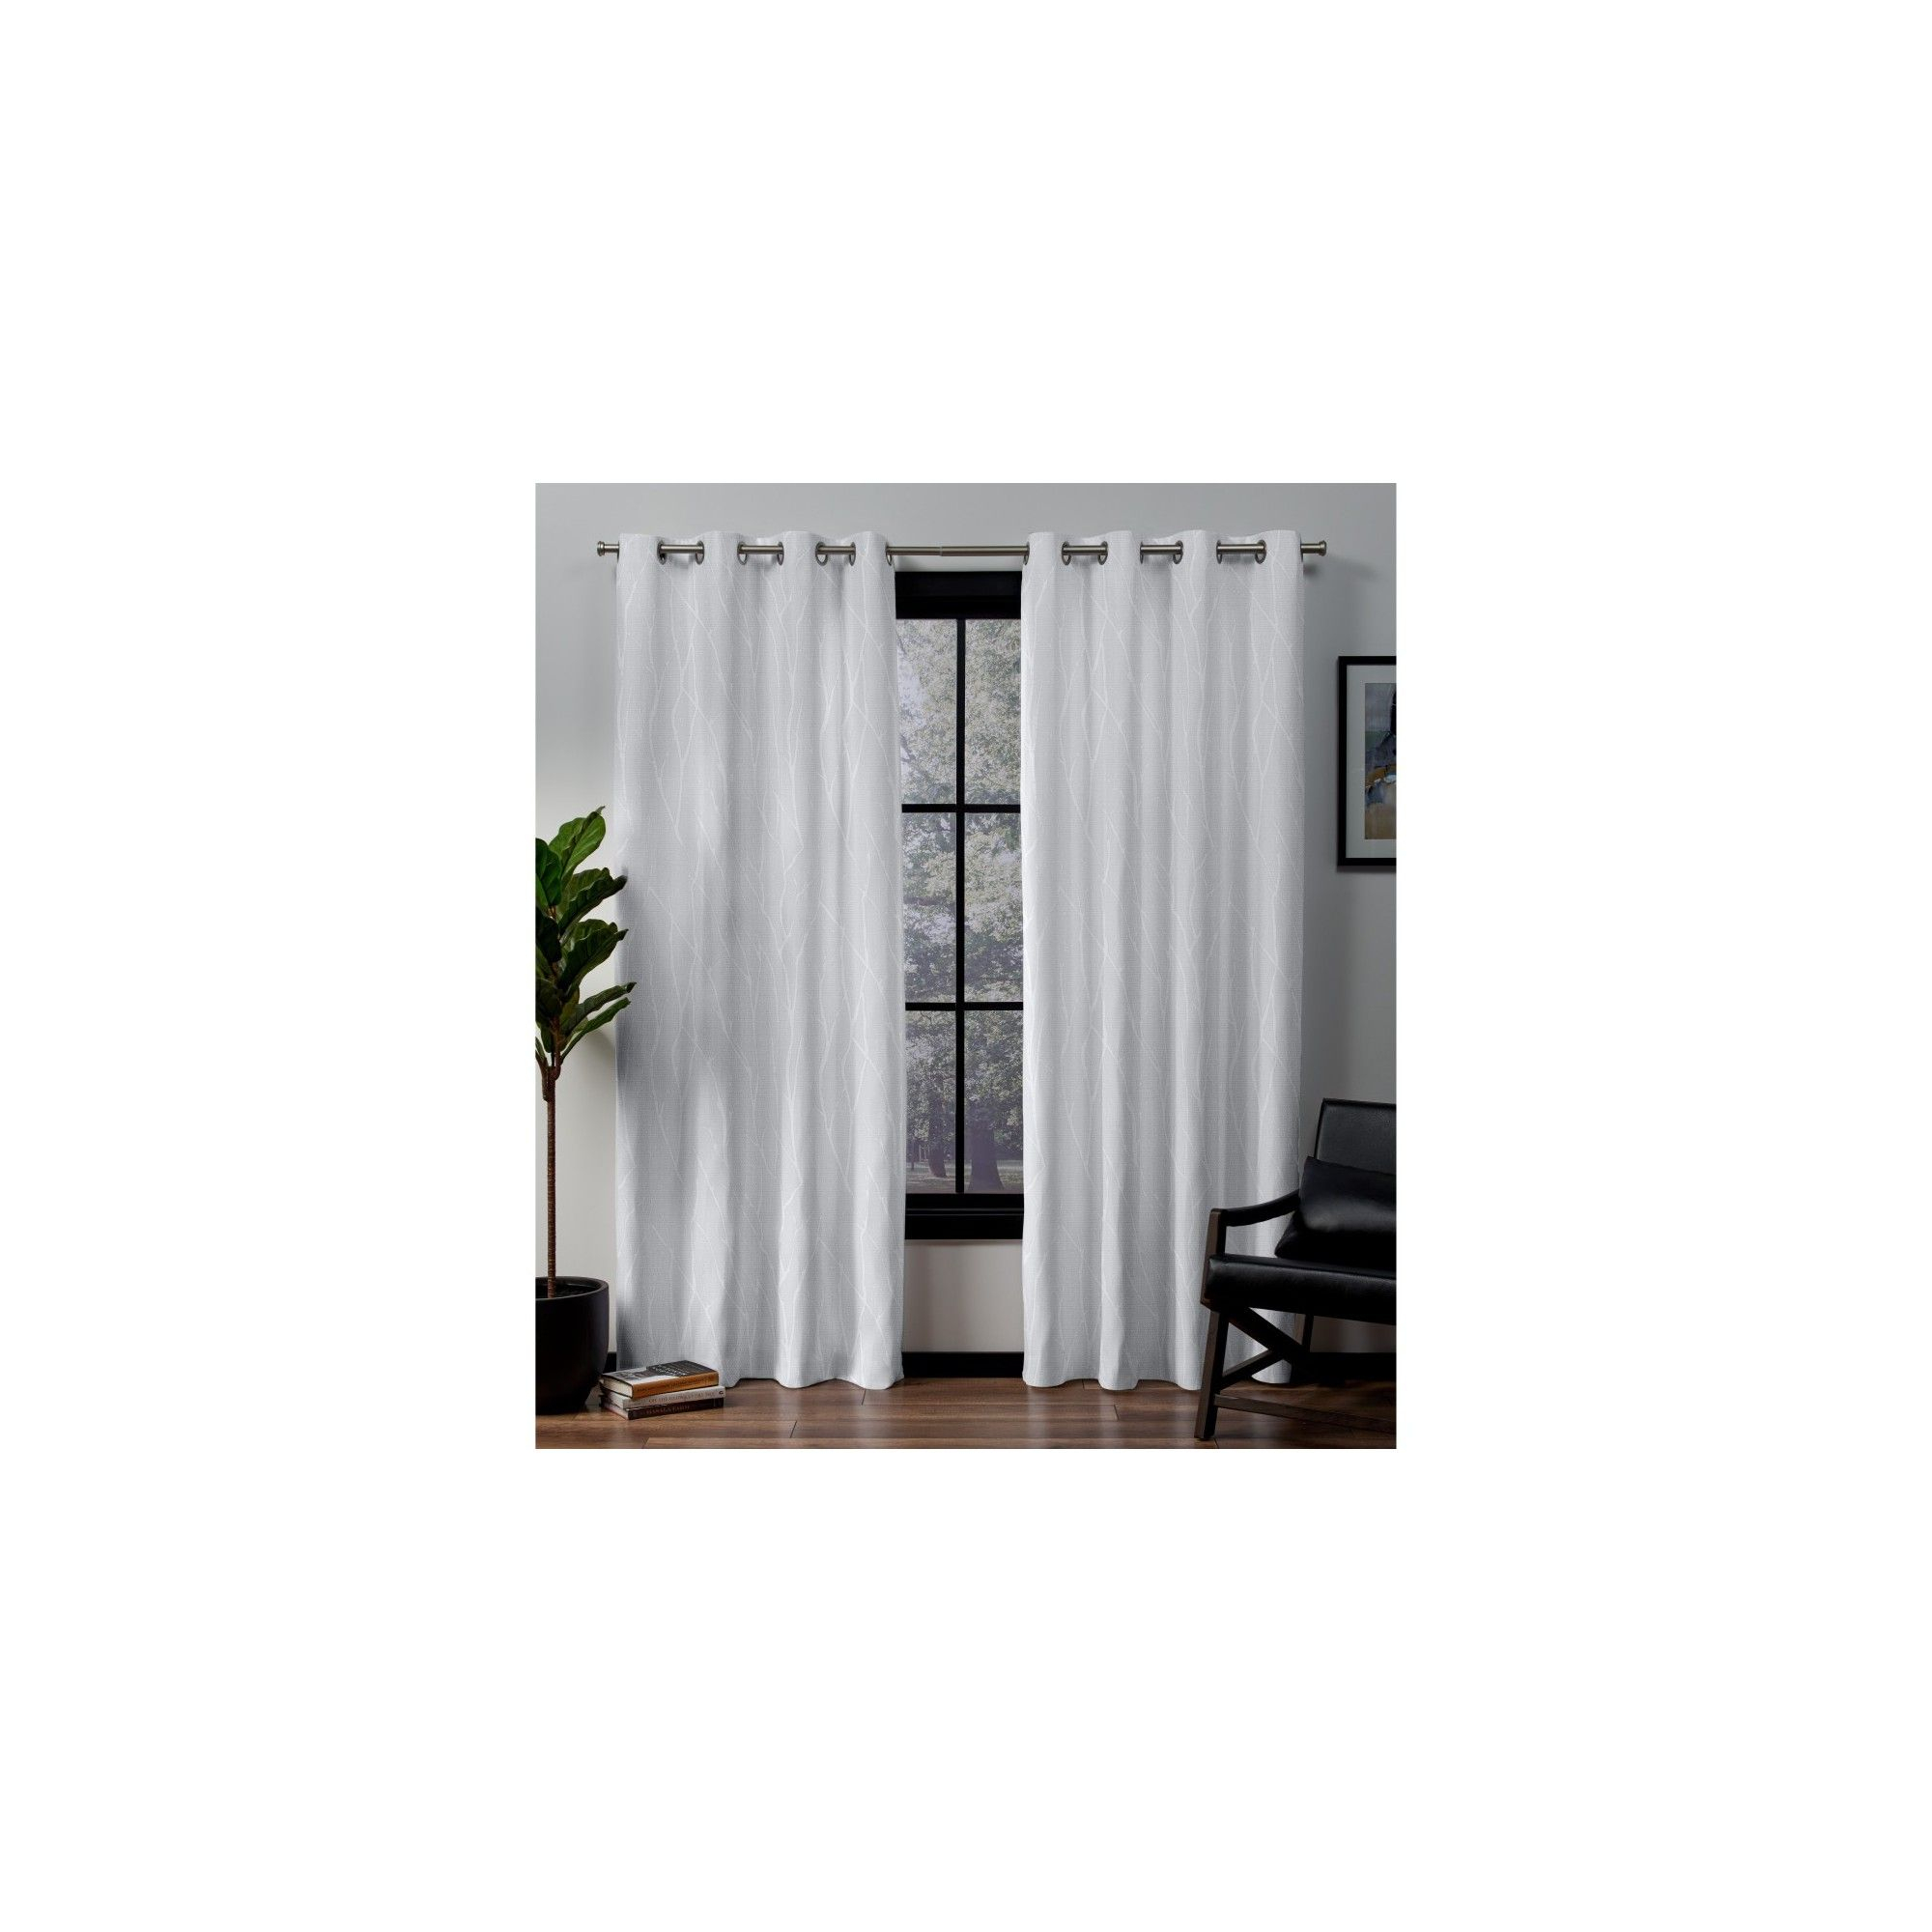 """52""""x84"""" Forest Hill Woven Blackout Grommet Top Window Pertaining To Forest Hill Woven Blackout Grommet Top Curtain Panel Pairs (View 10 of 20)"""